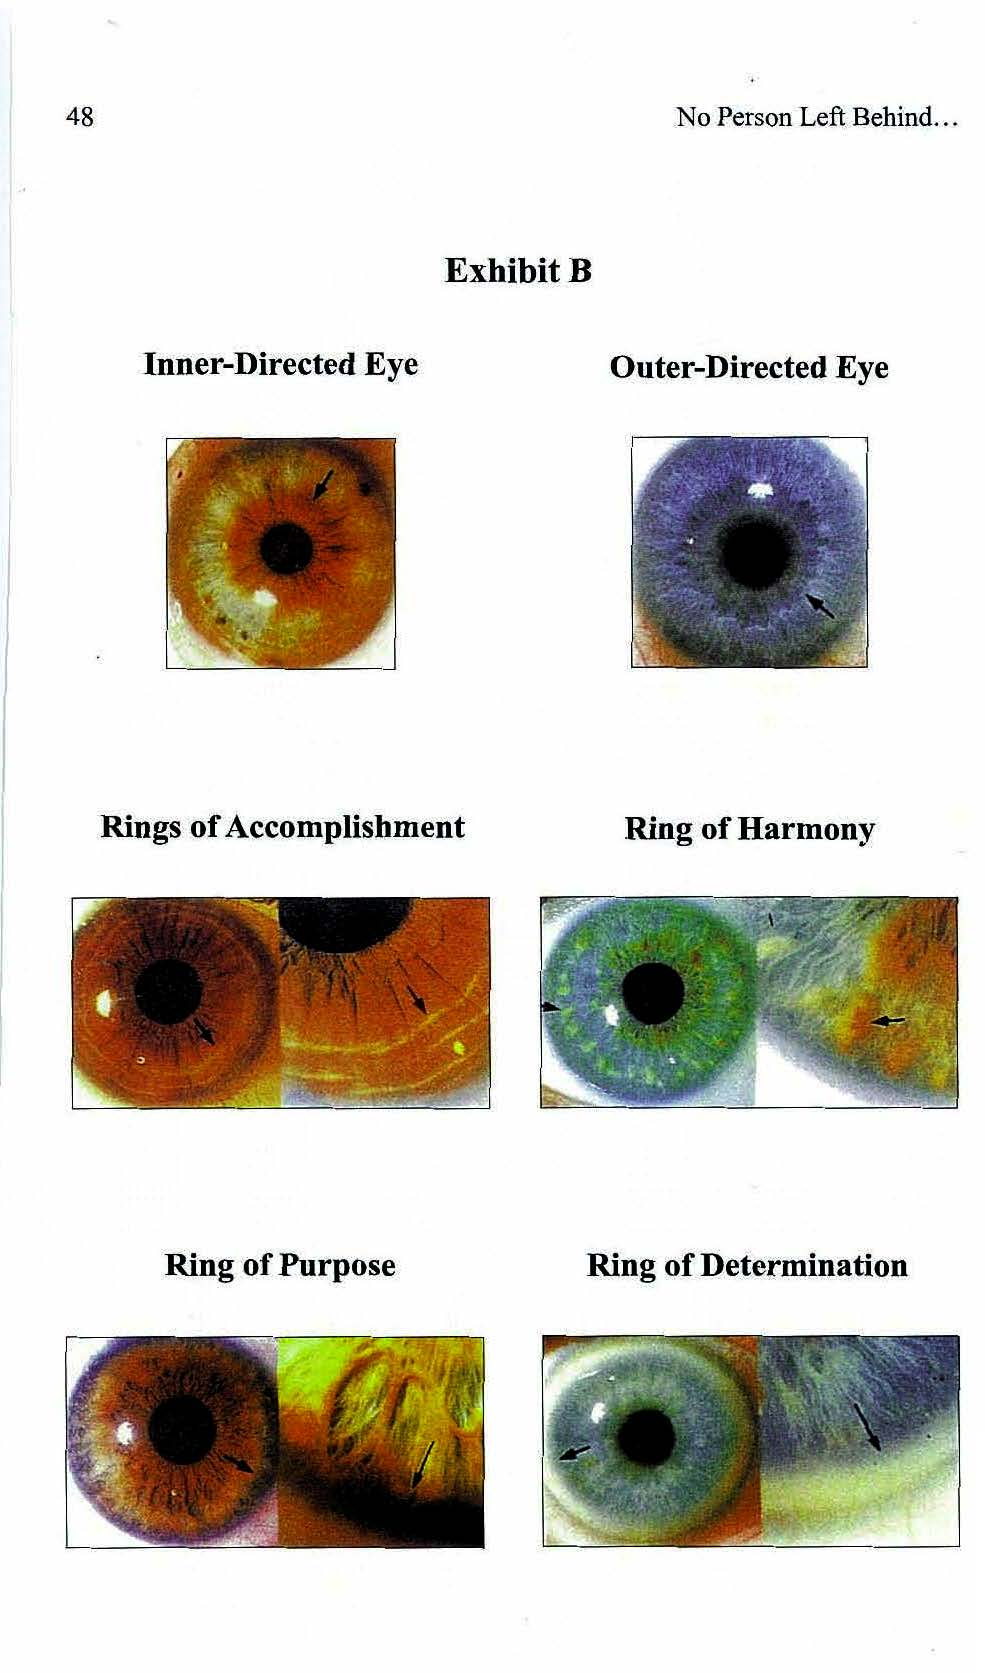 various eye features